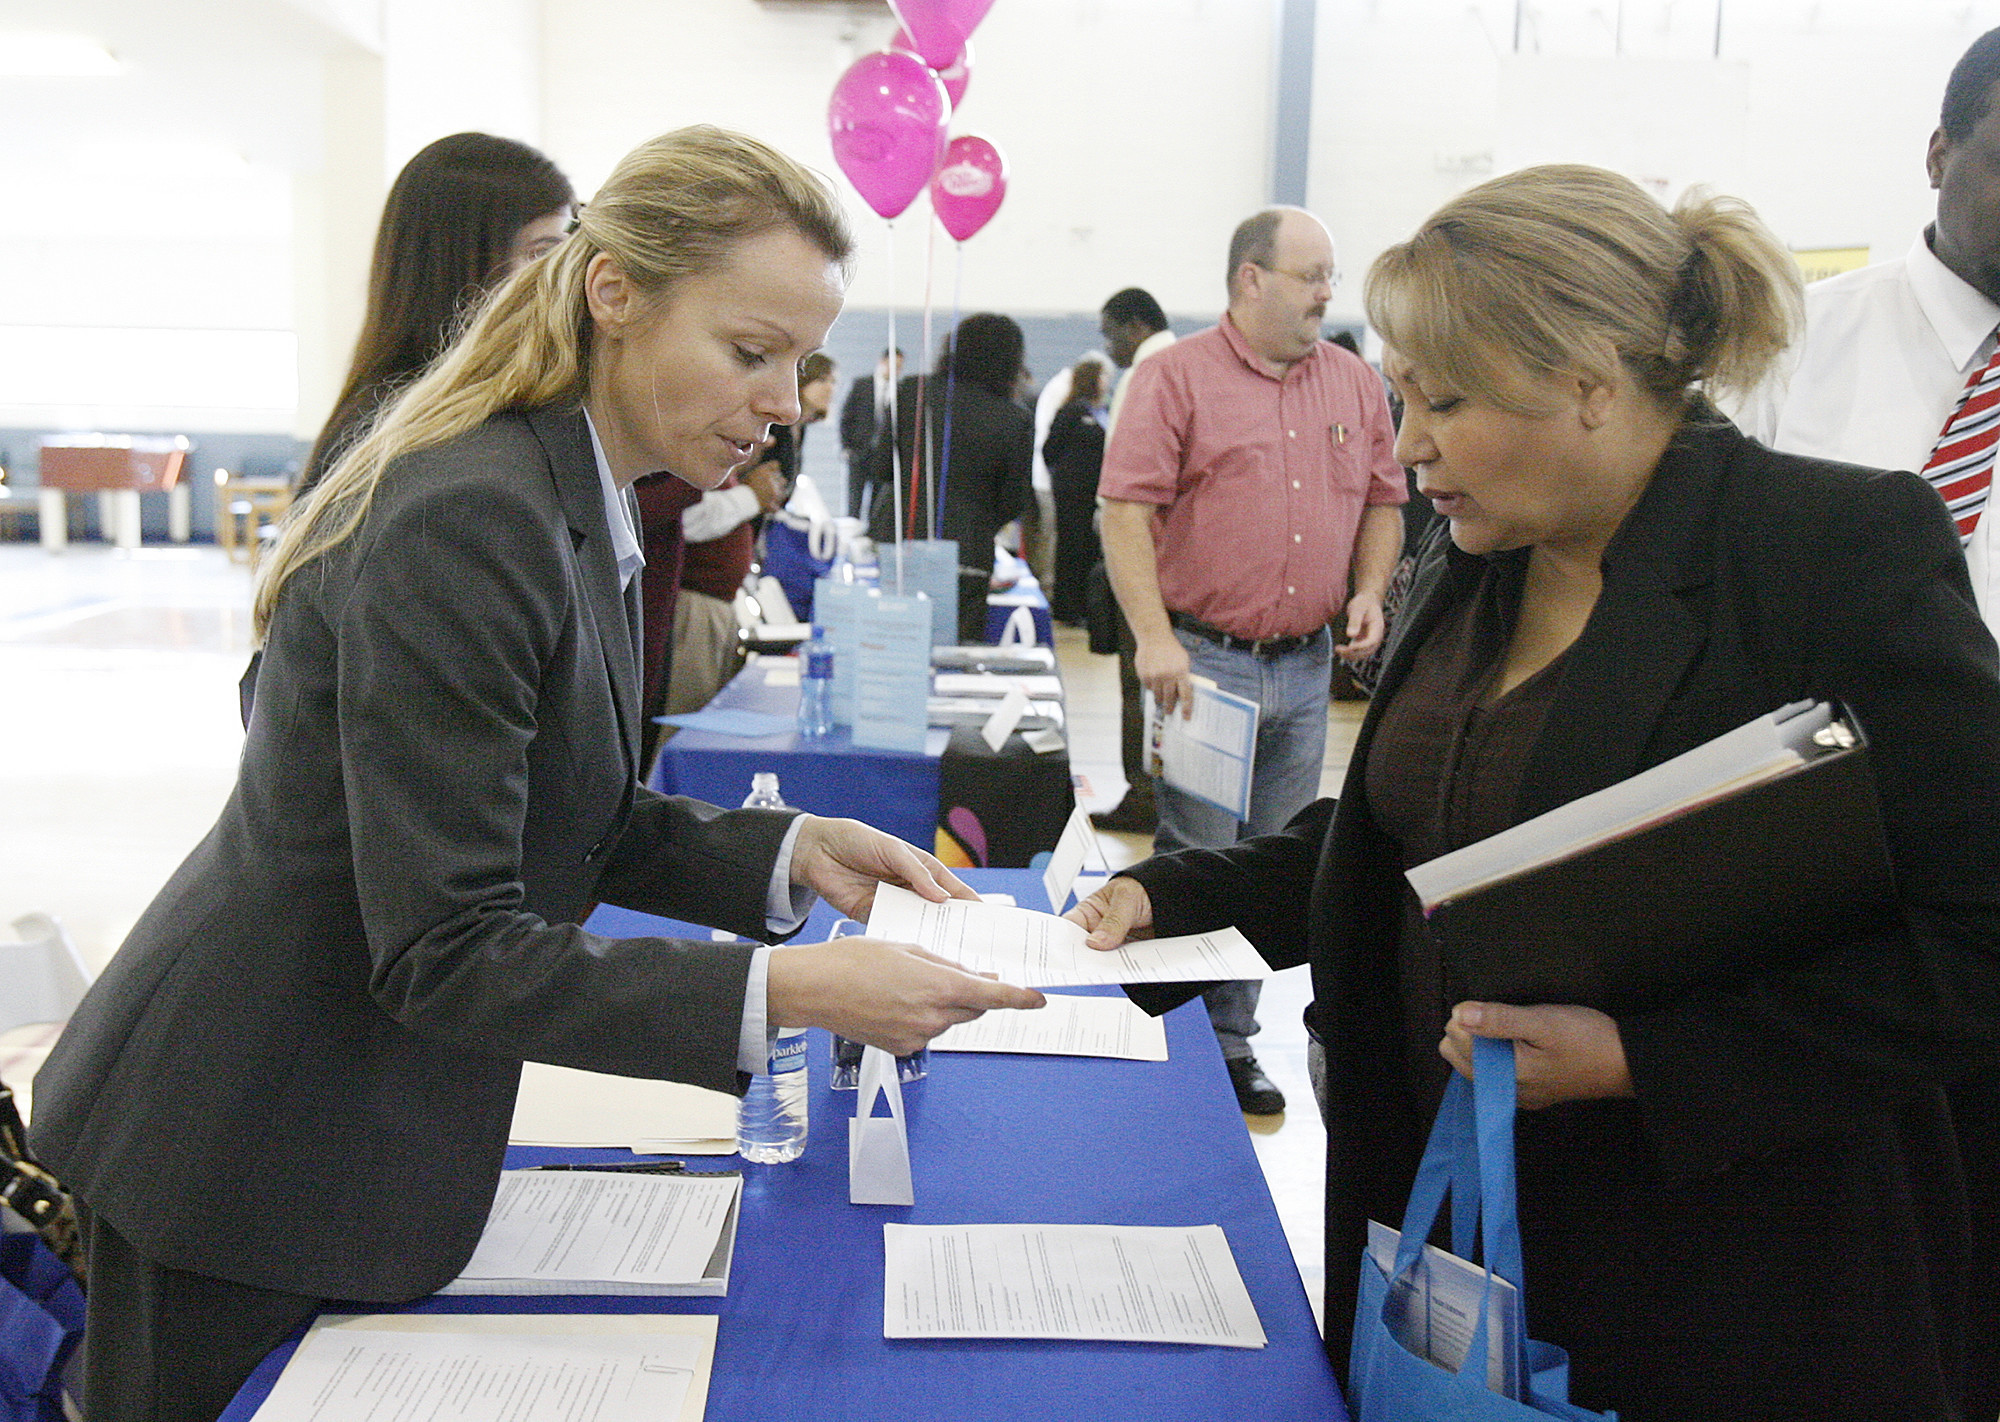 what are job fairs